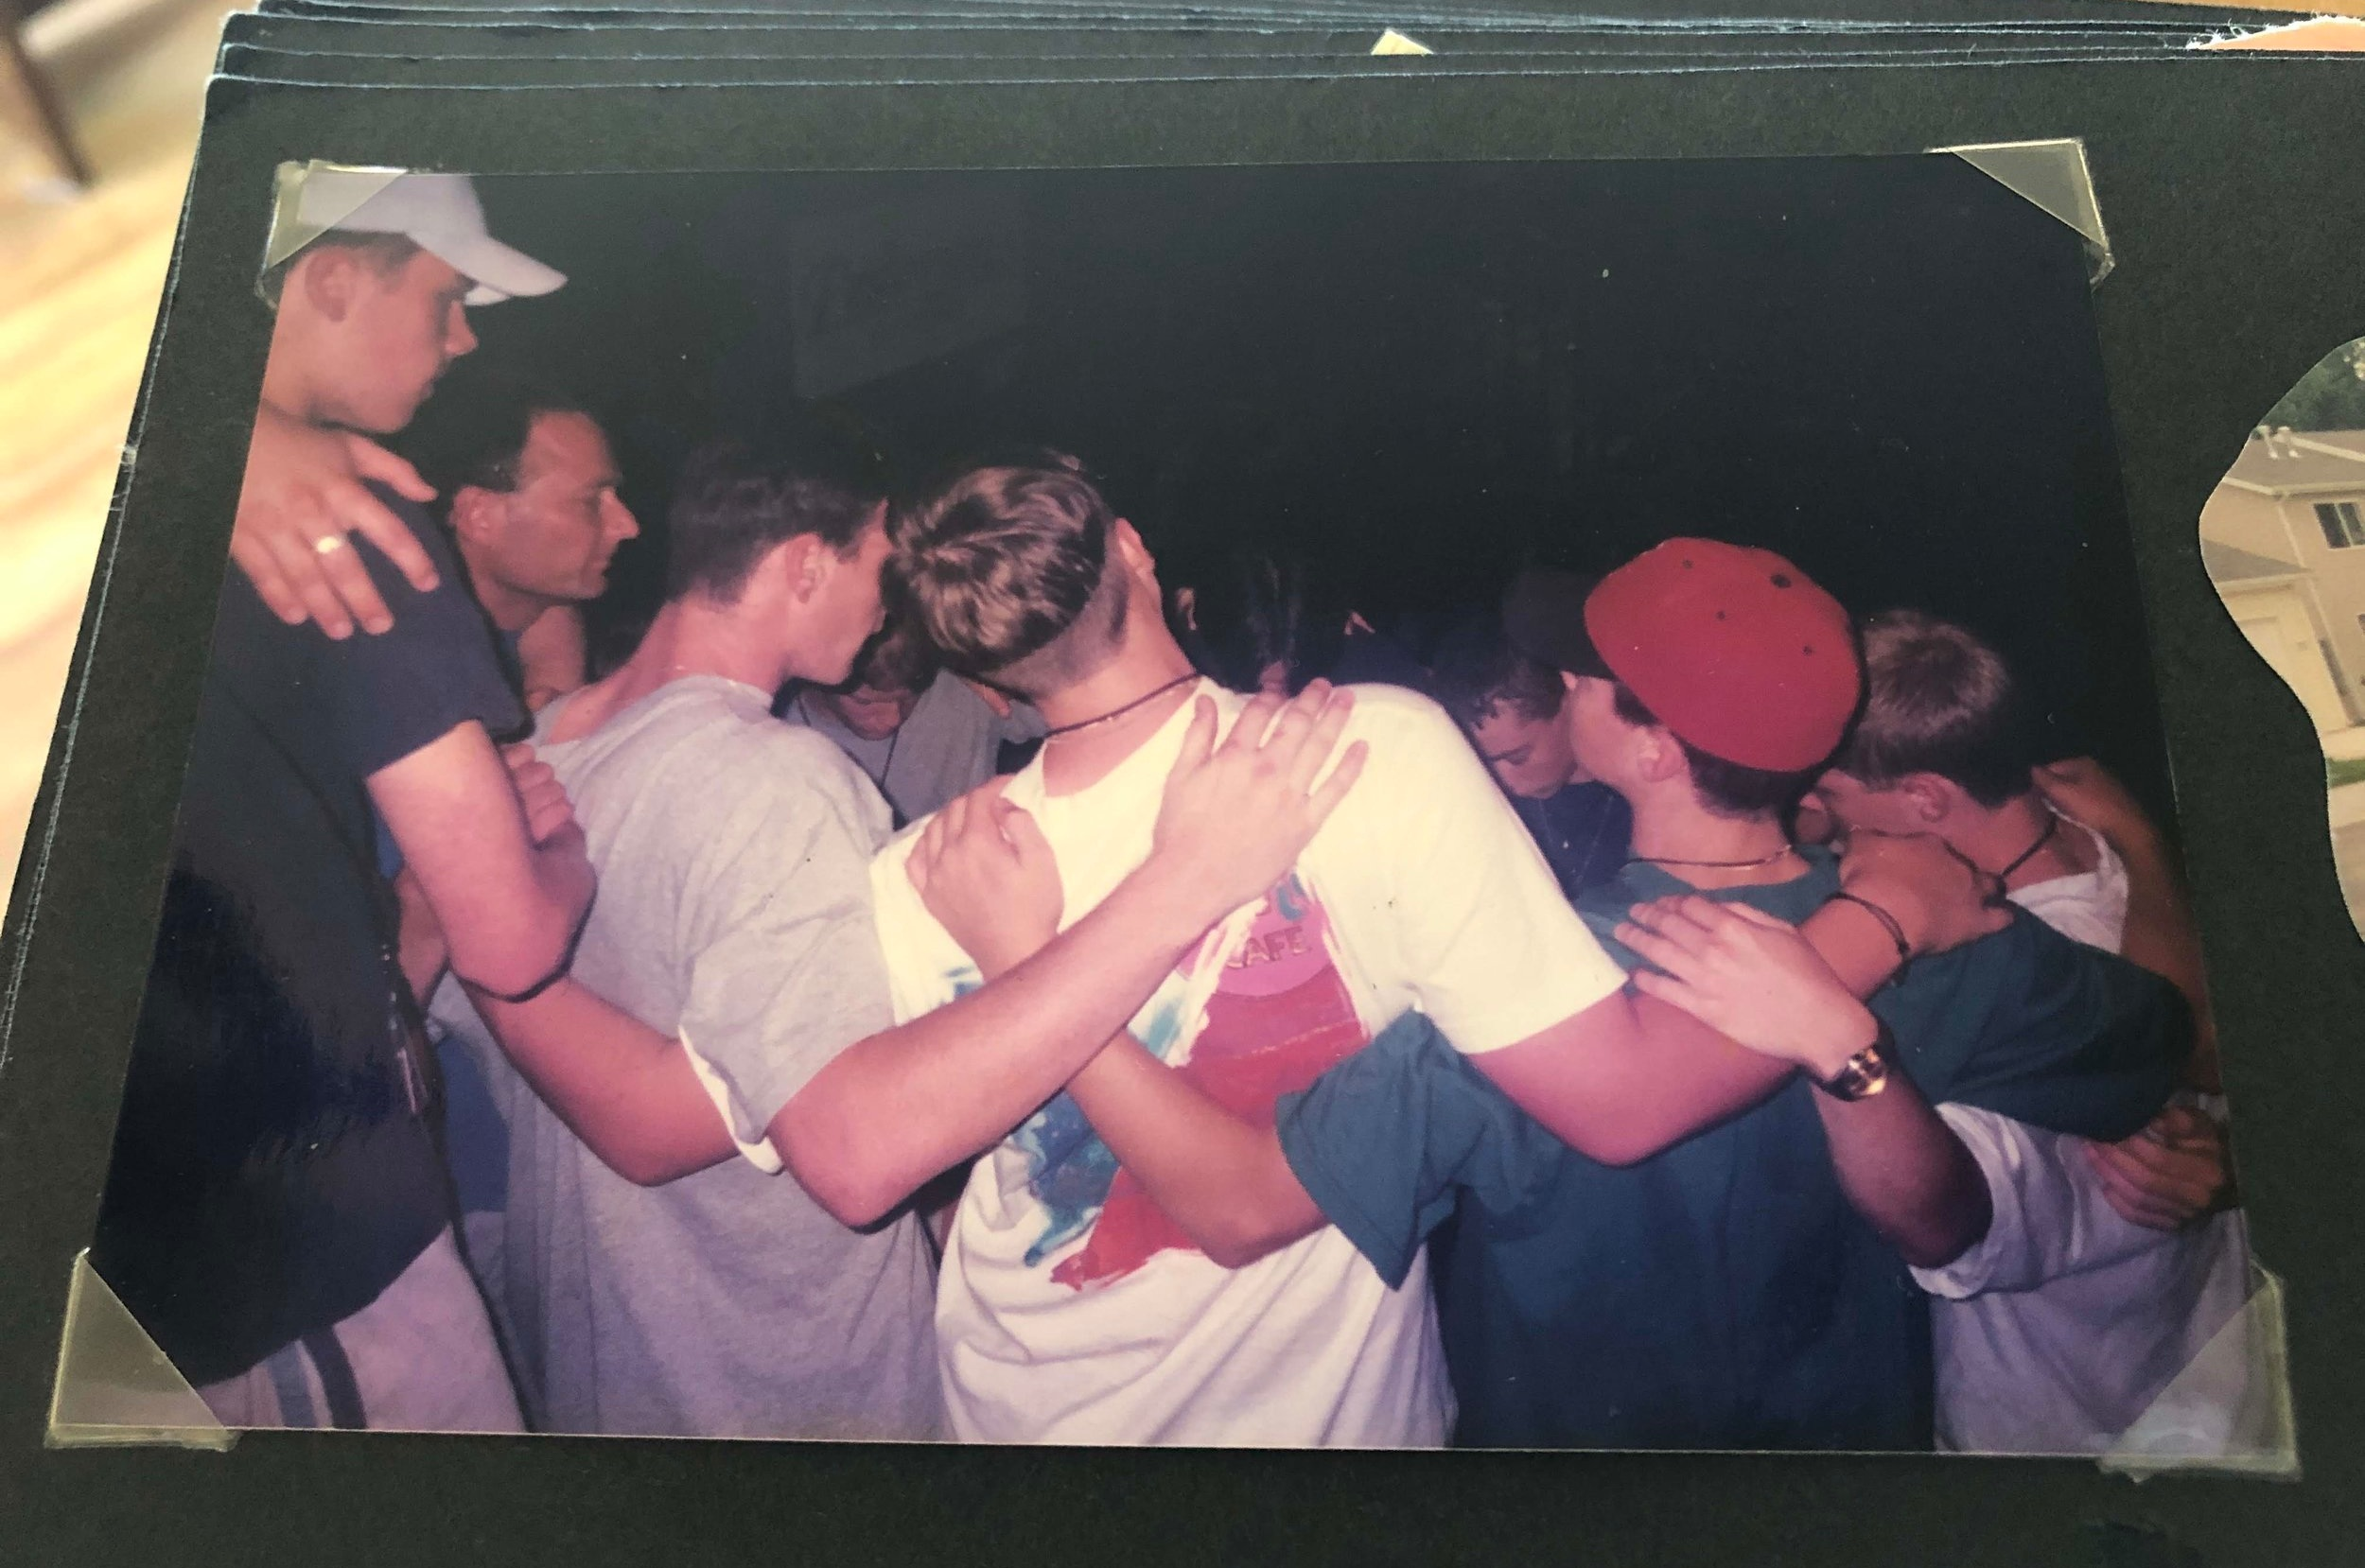 Praying in the Moby Arena, Colorado State University 1997. There was a disastrous flash flood while we were there for a youth conference.